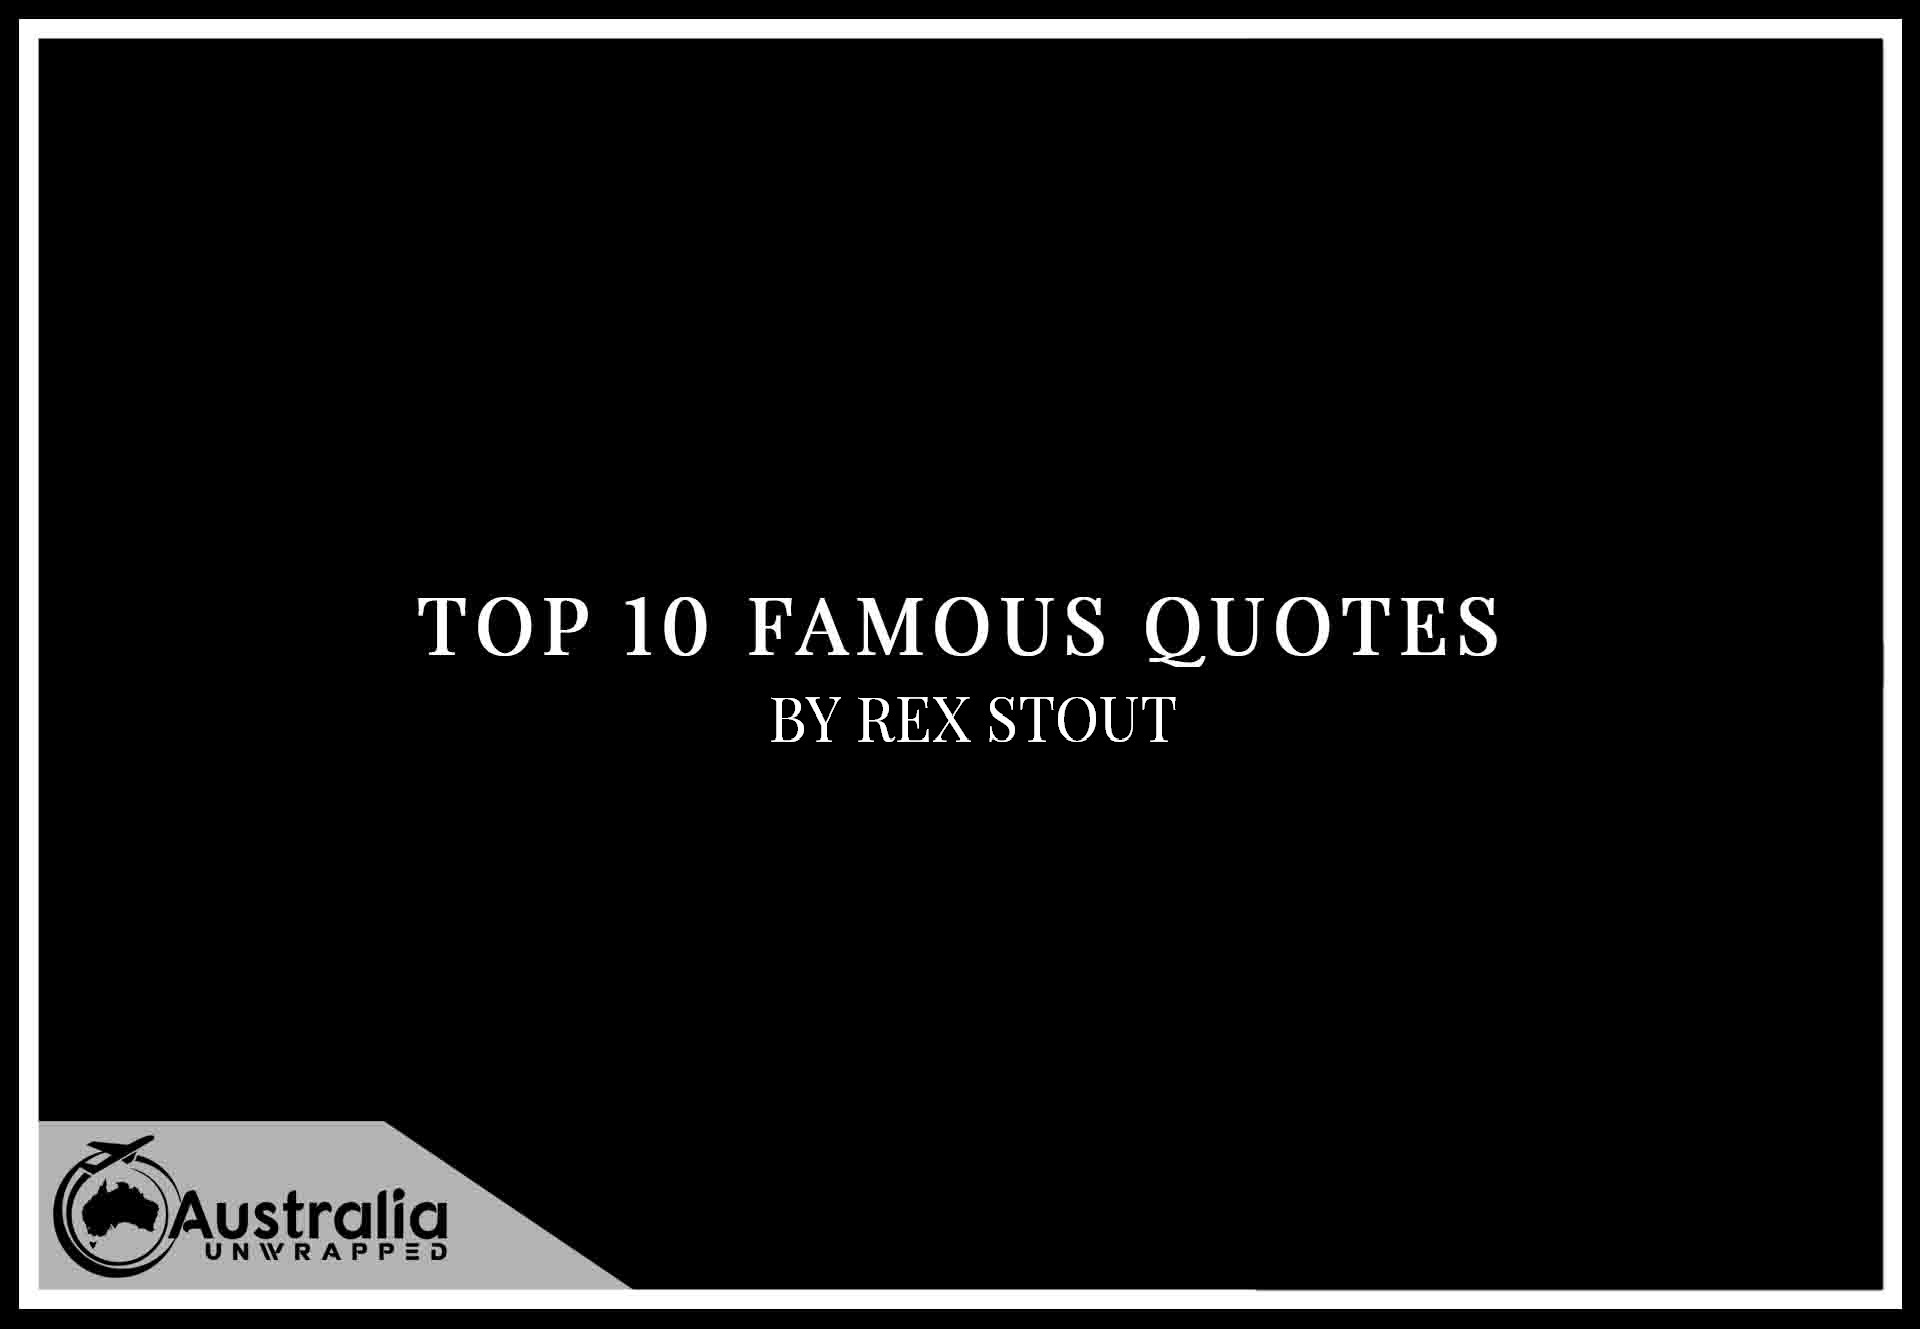 Top 10 Famous Quotes by Author Rex Stout